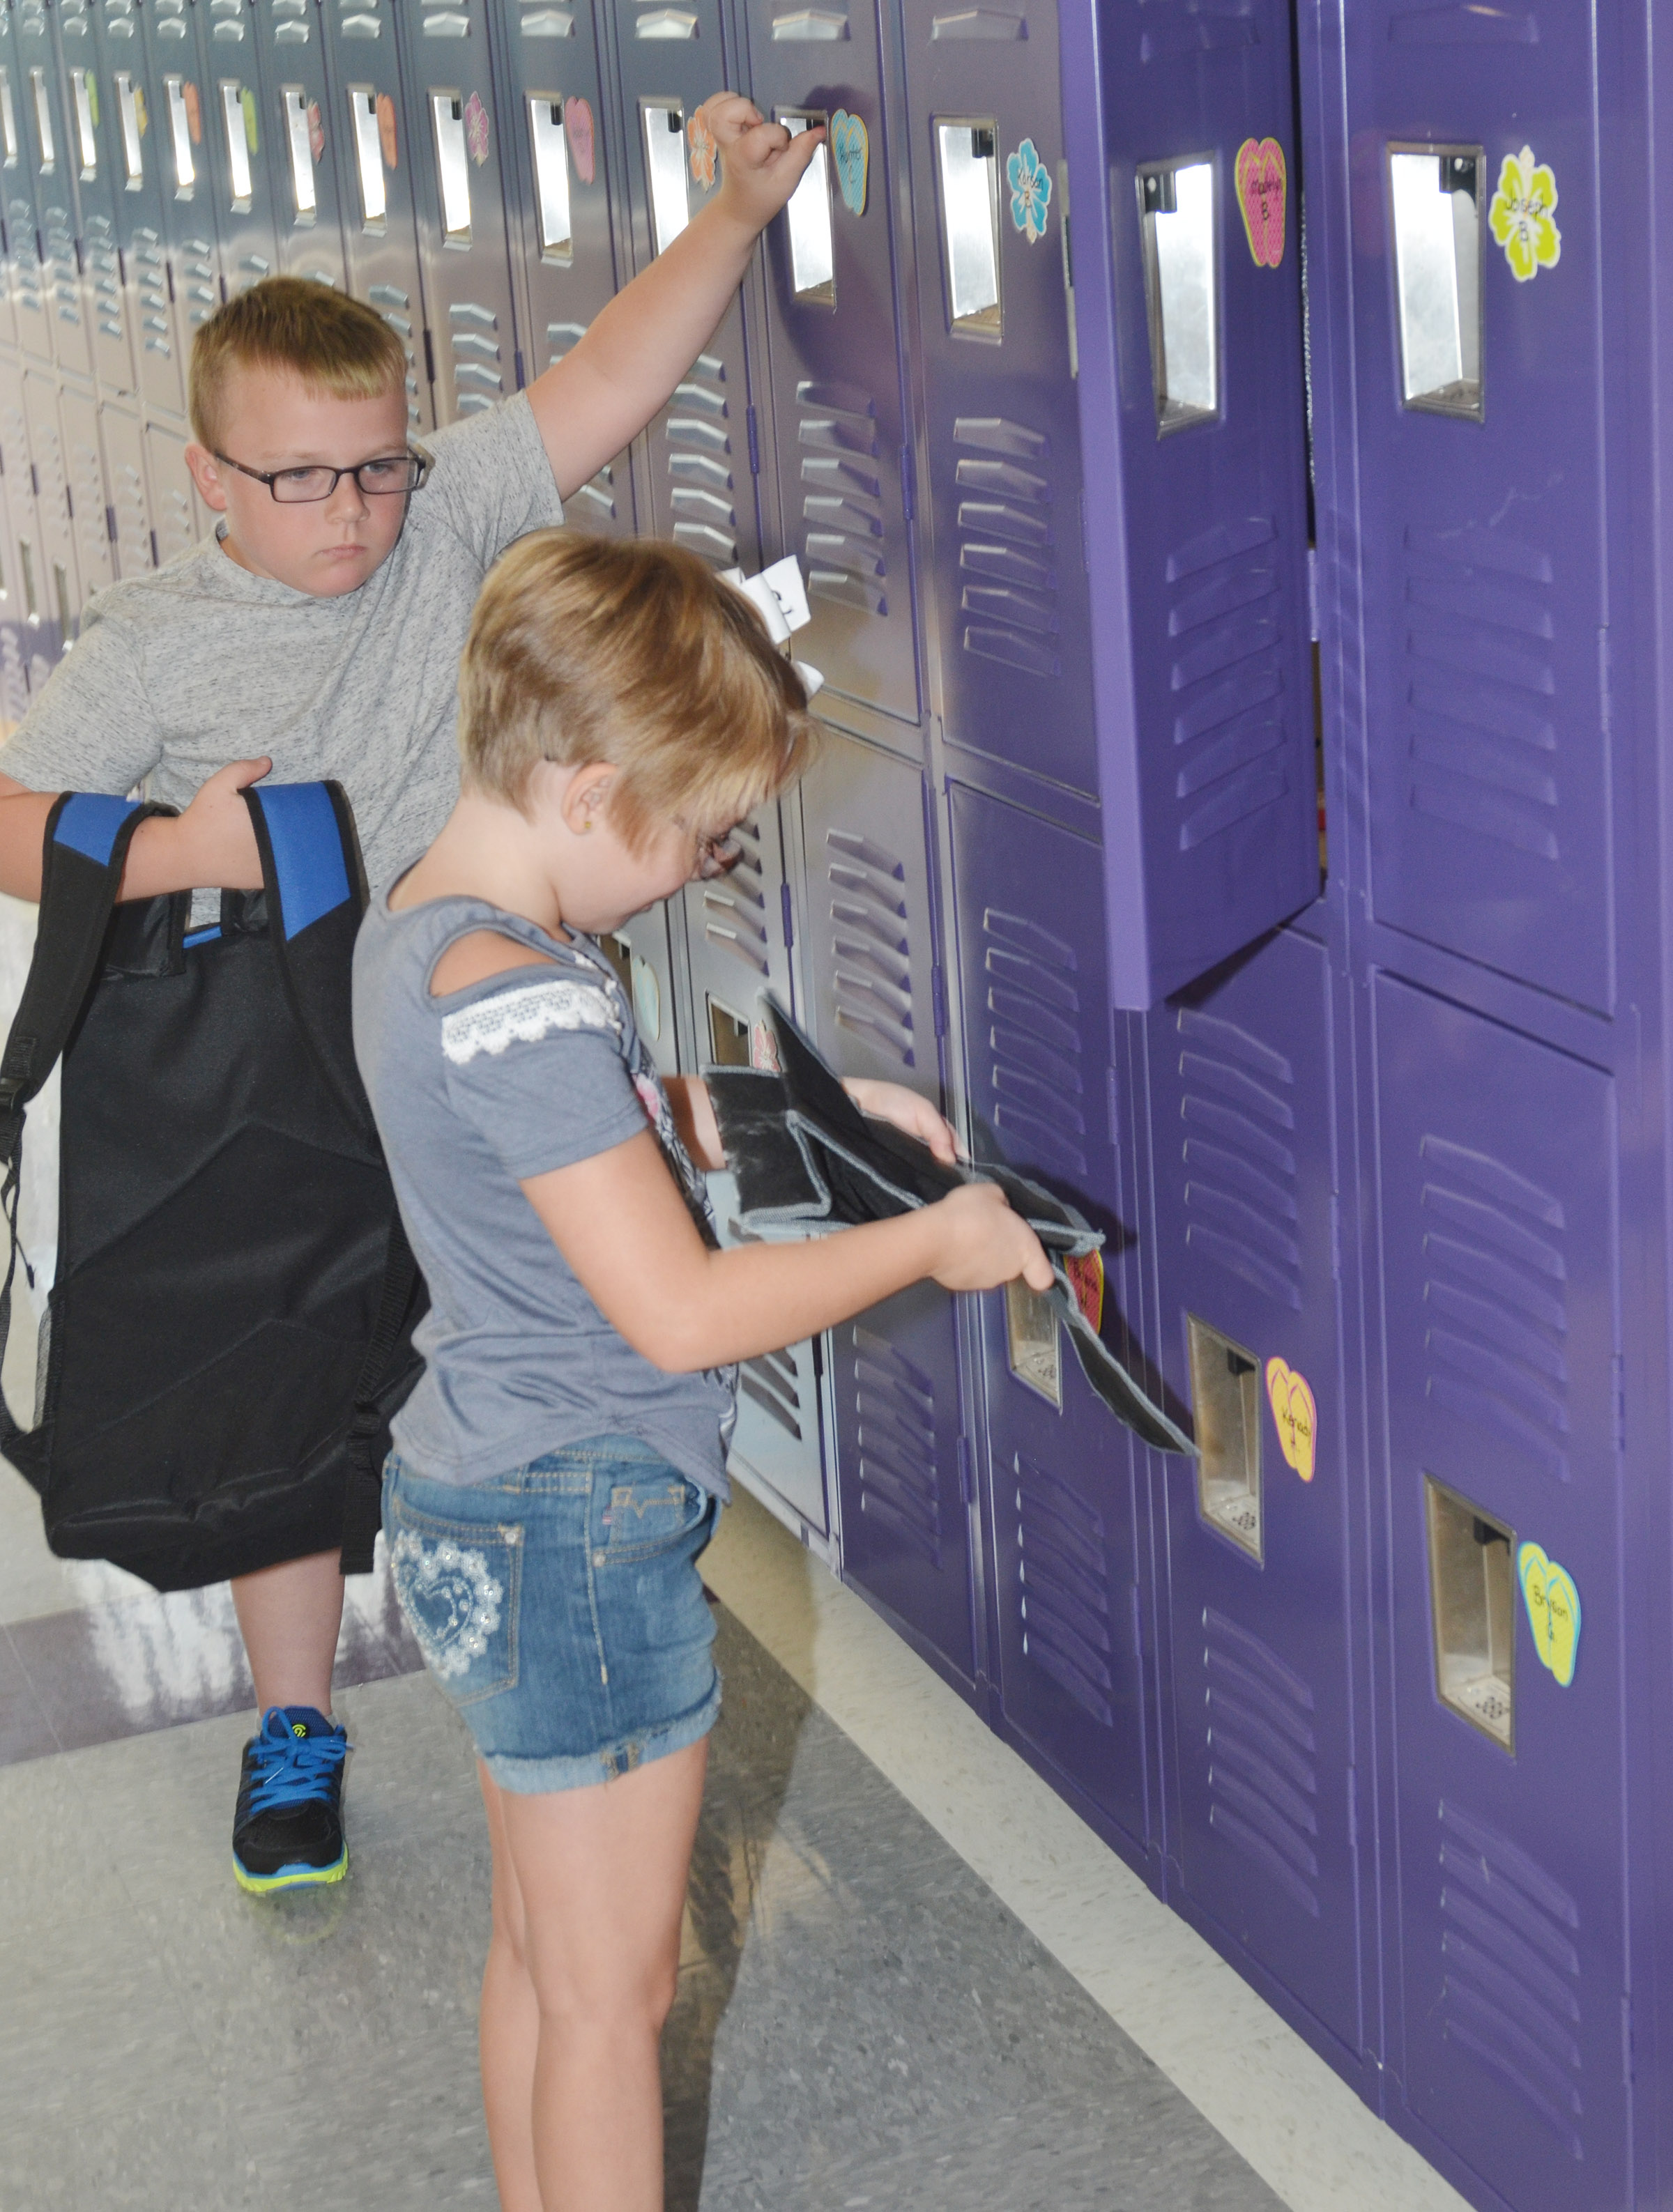 CES second-graders Hunter Clark, at left, and Maddie Brunelle put their supplies in their lockers.